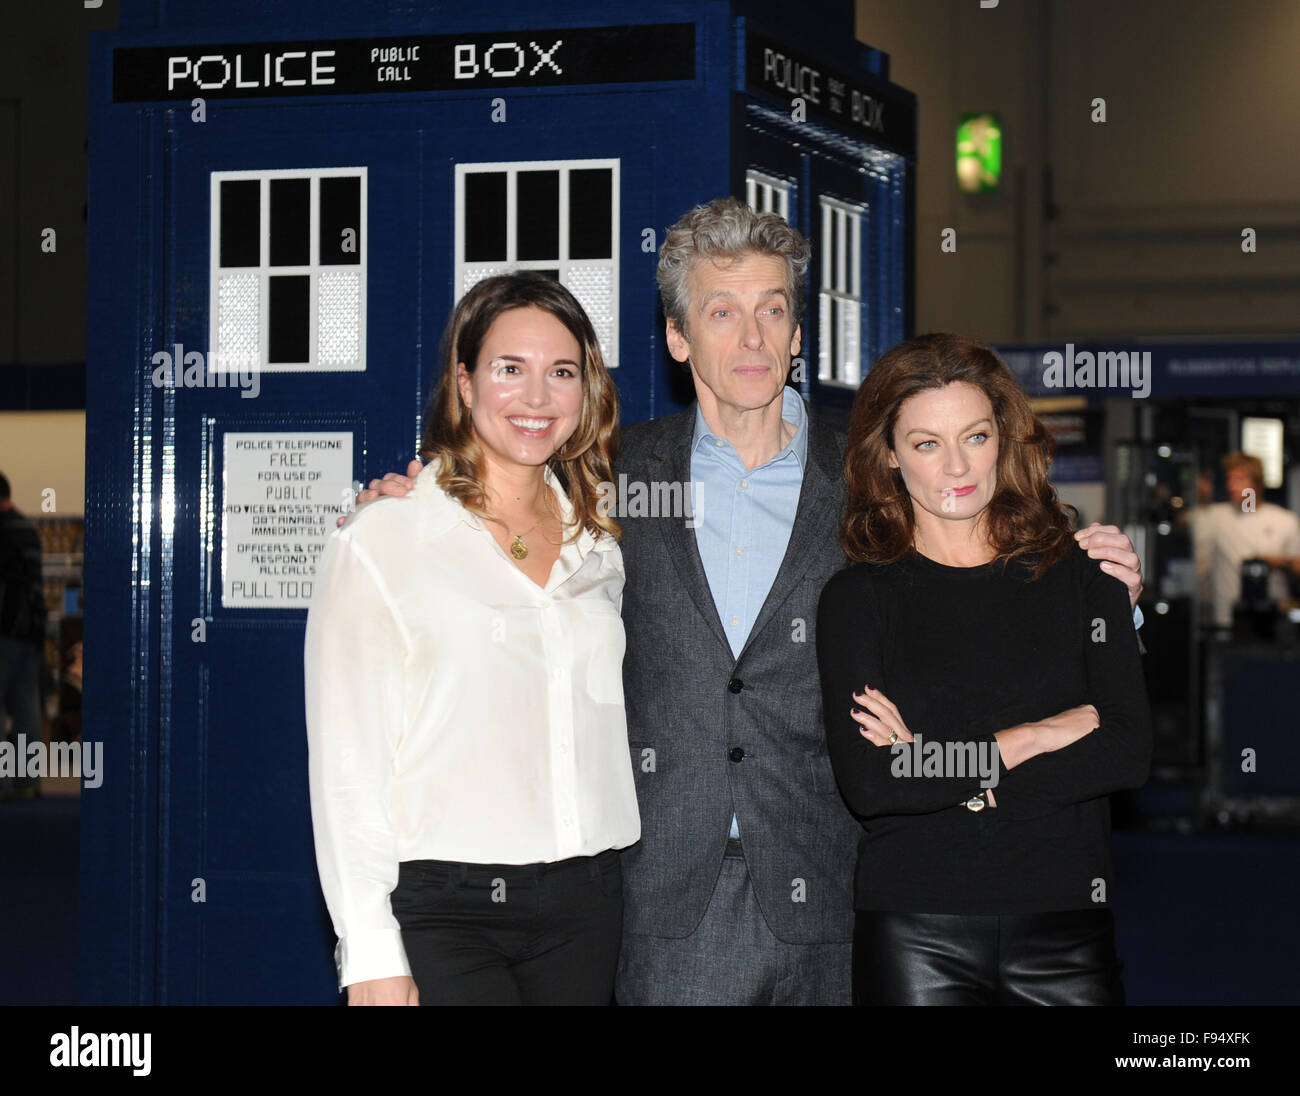 doctor who festival at excel london featuring ingrid oliver stock